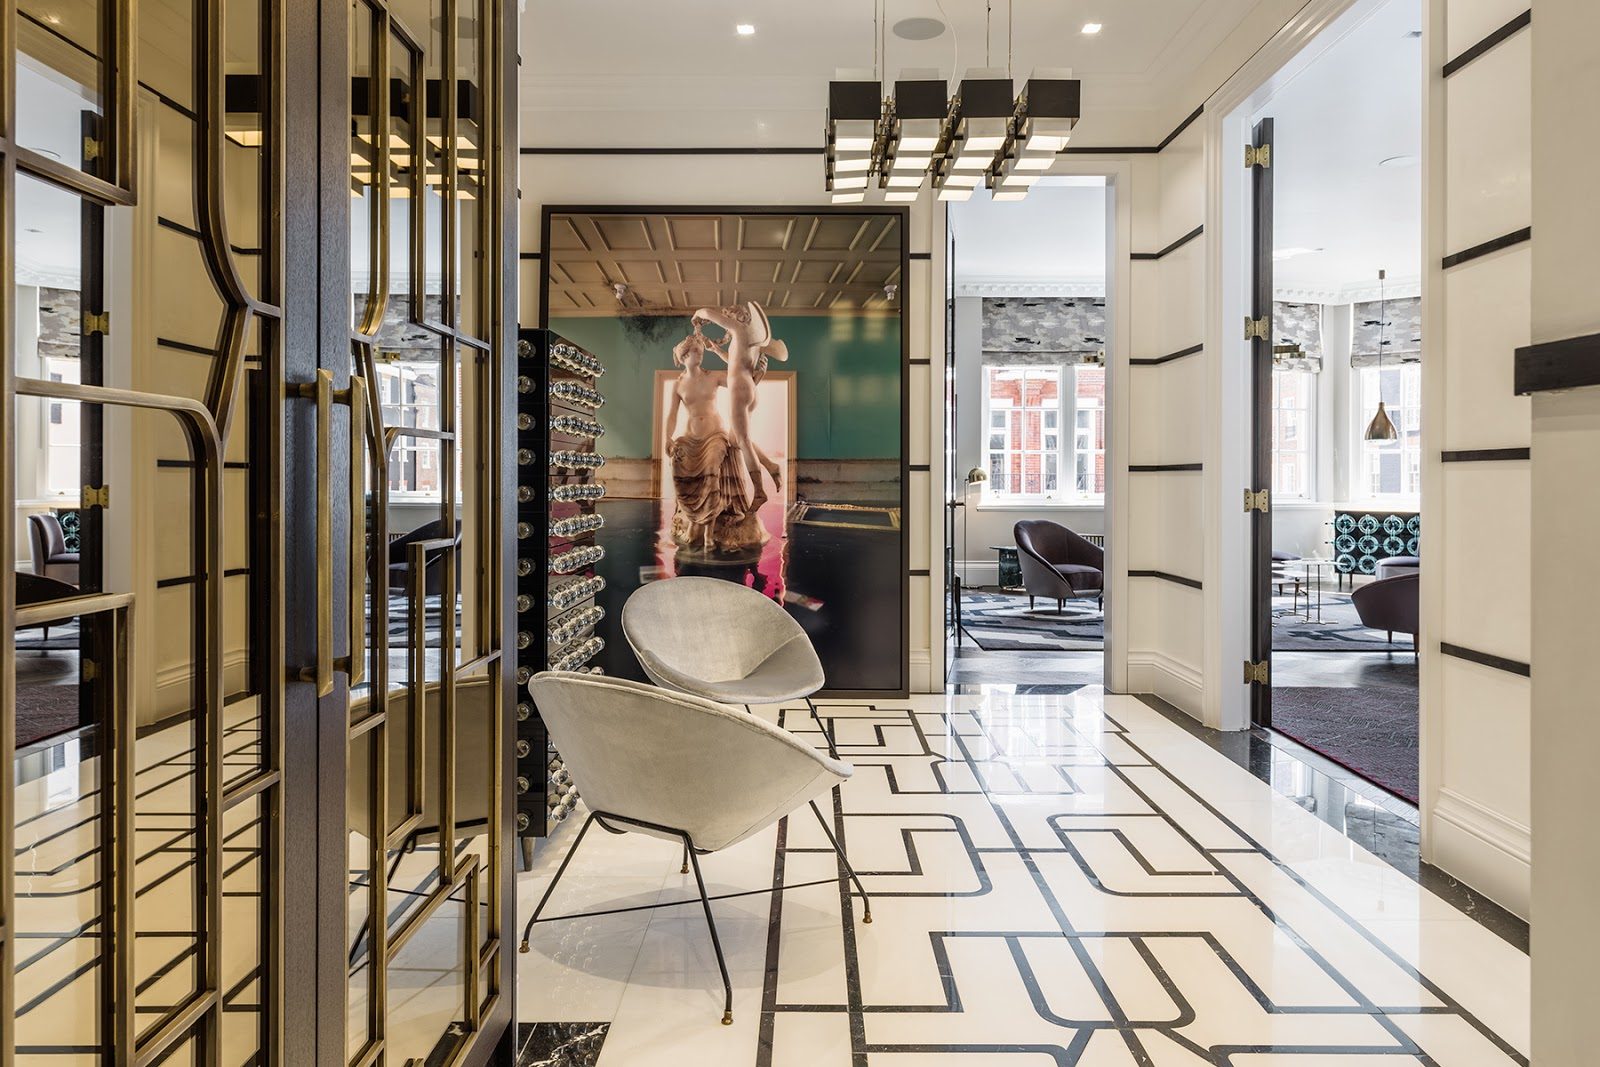 Luxurious eclectic London apartment with pattern geometric rugs, mid century modern furniture and art, ornamented doors